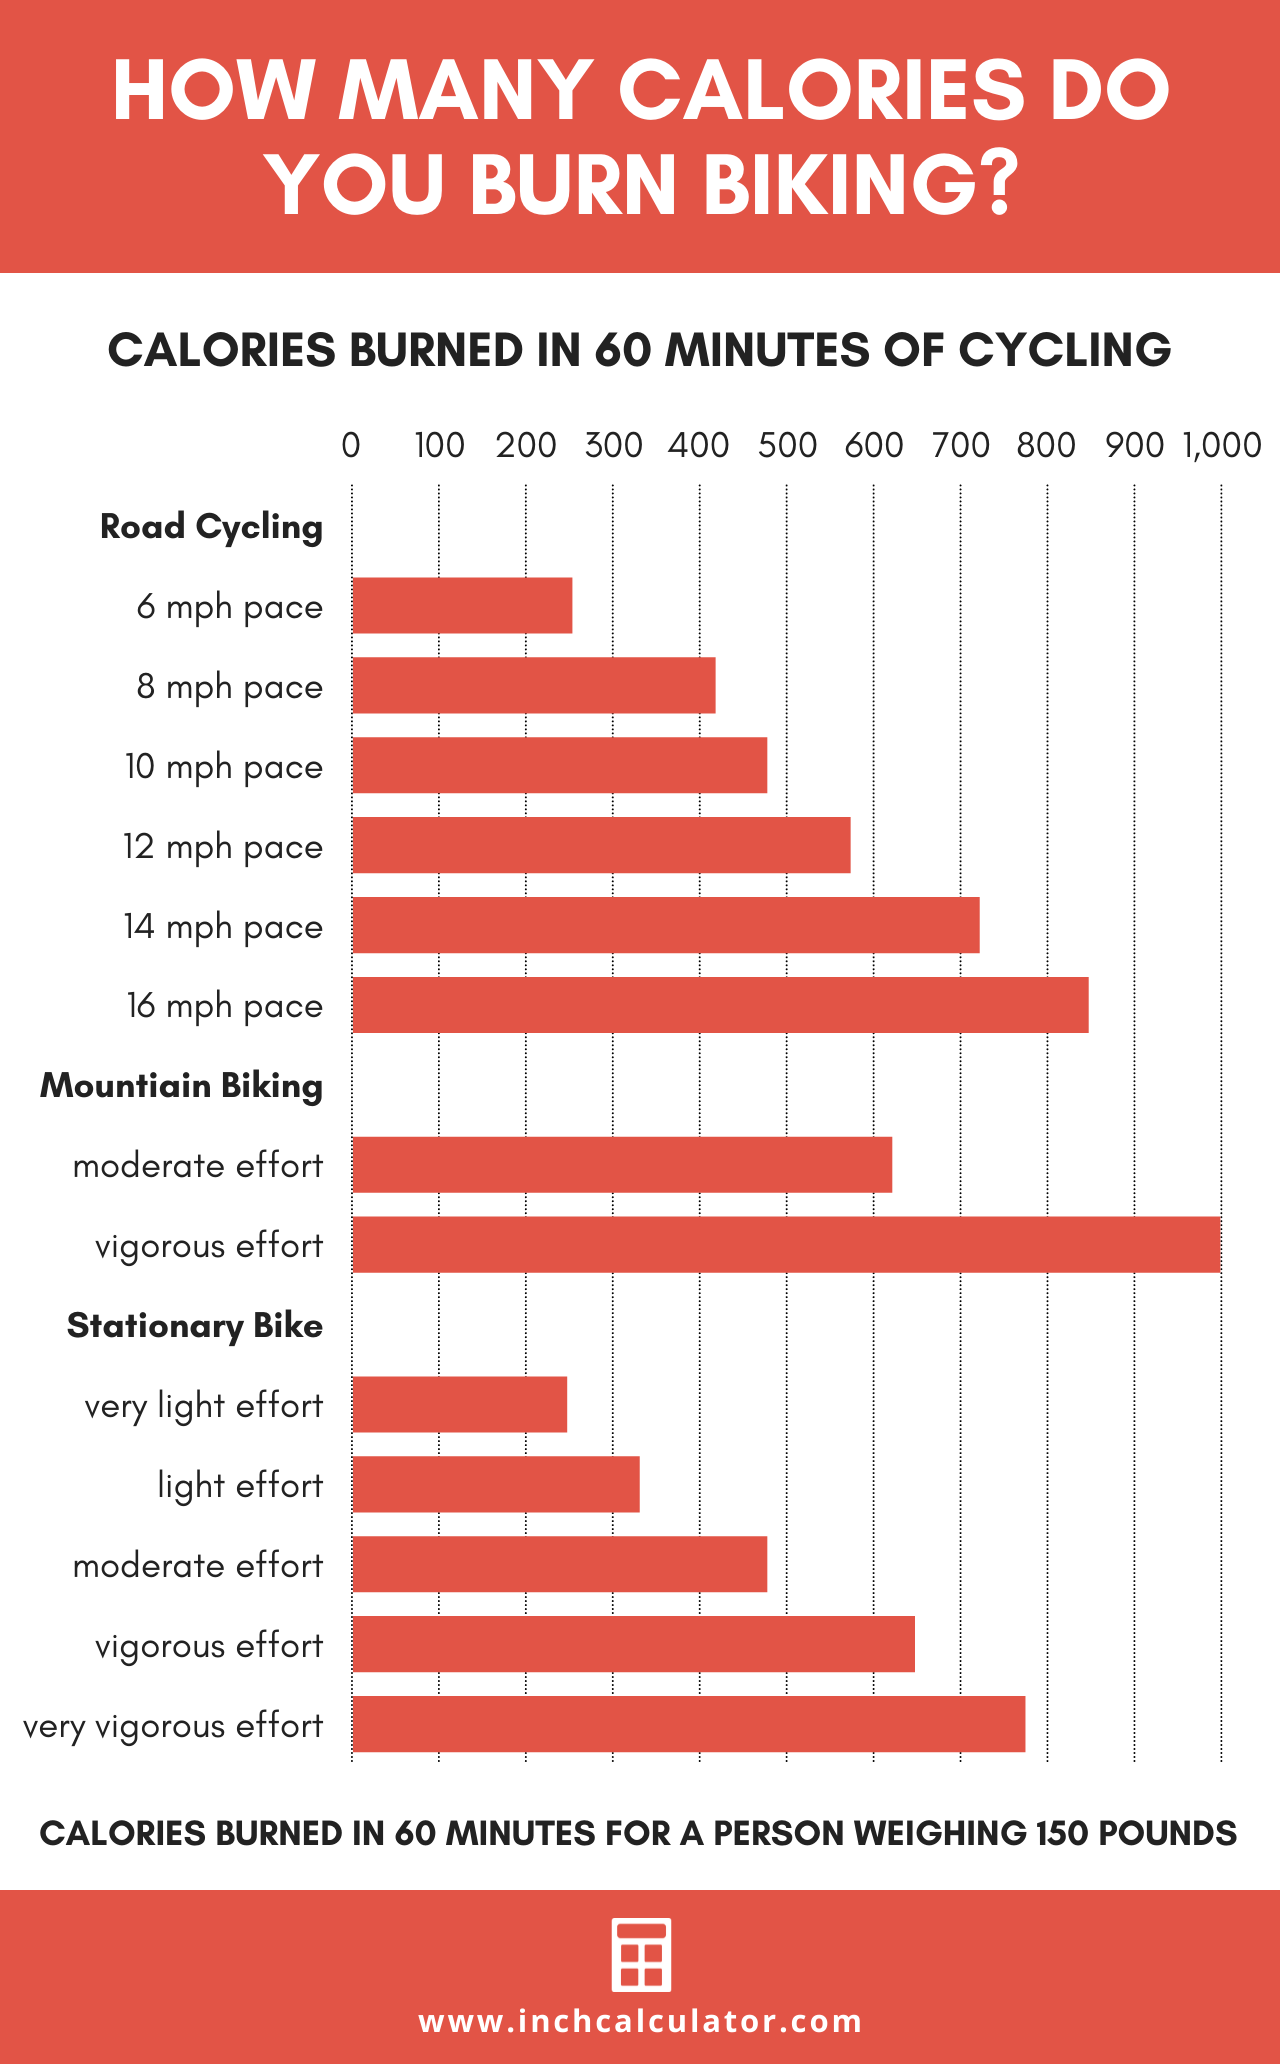 chart showing the calories burned per hour biking at various levels of intensity